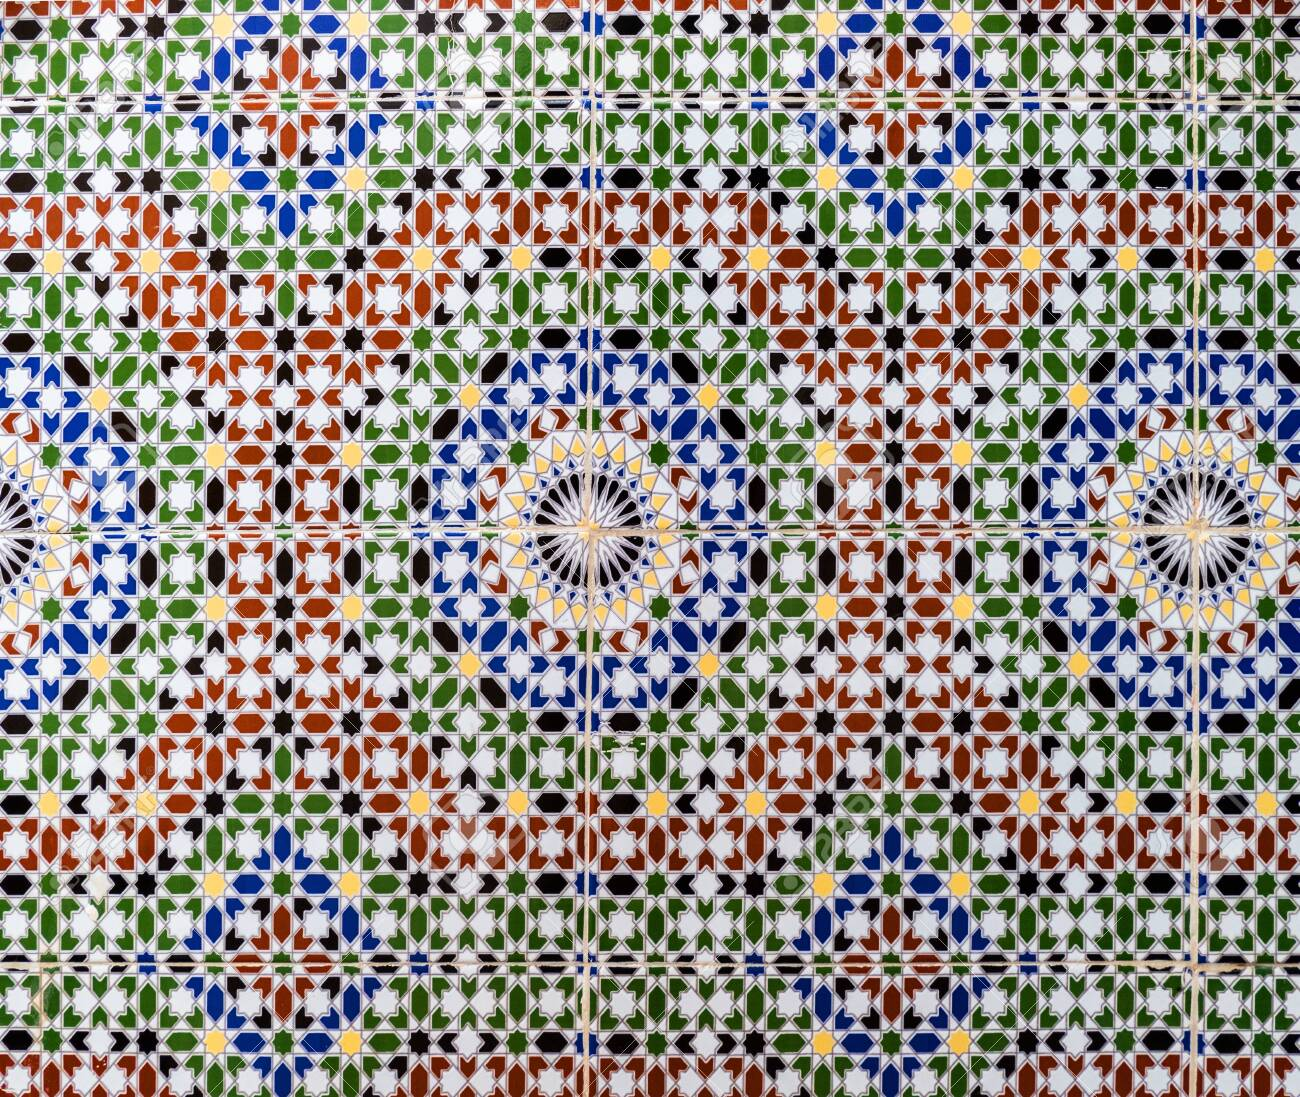 Tiles simulating tradional wall decoration in Morocco - 149486736